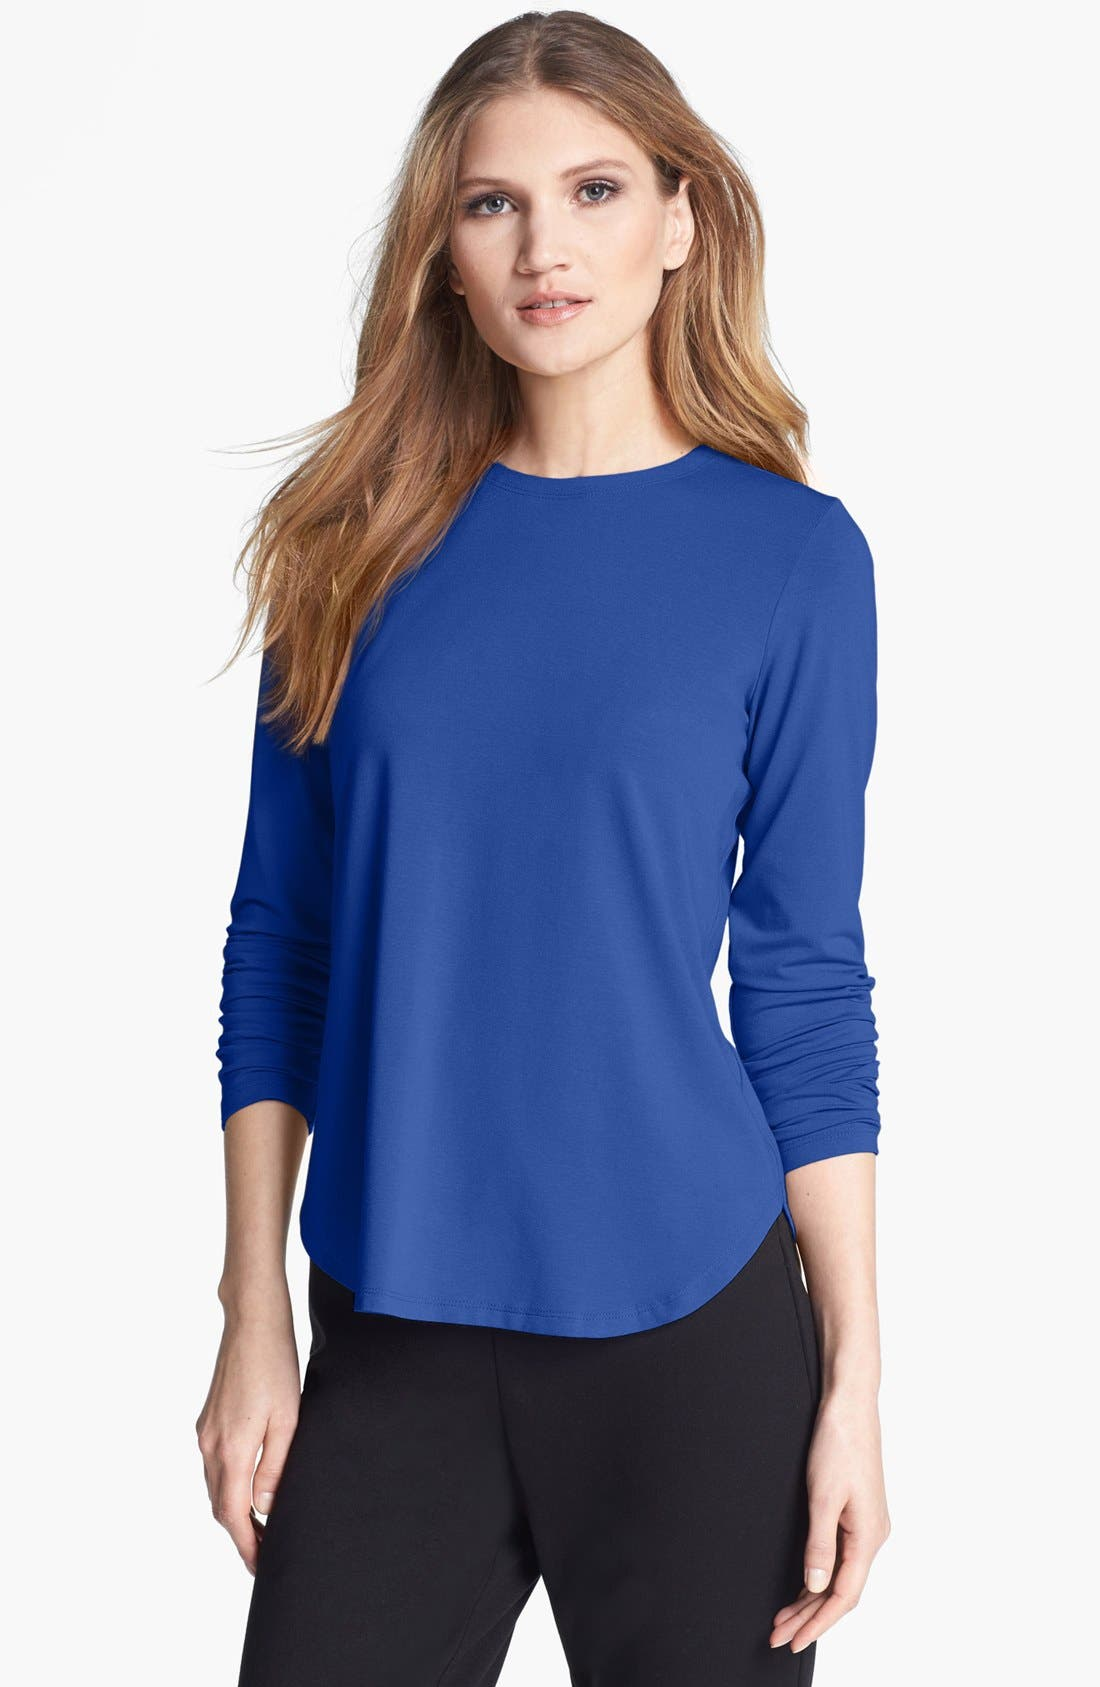 Alternate Image 1 Selected - Eileen Fisher Stretch Jersey Crewneck Tee (Petite)